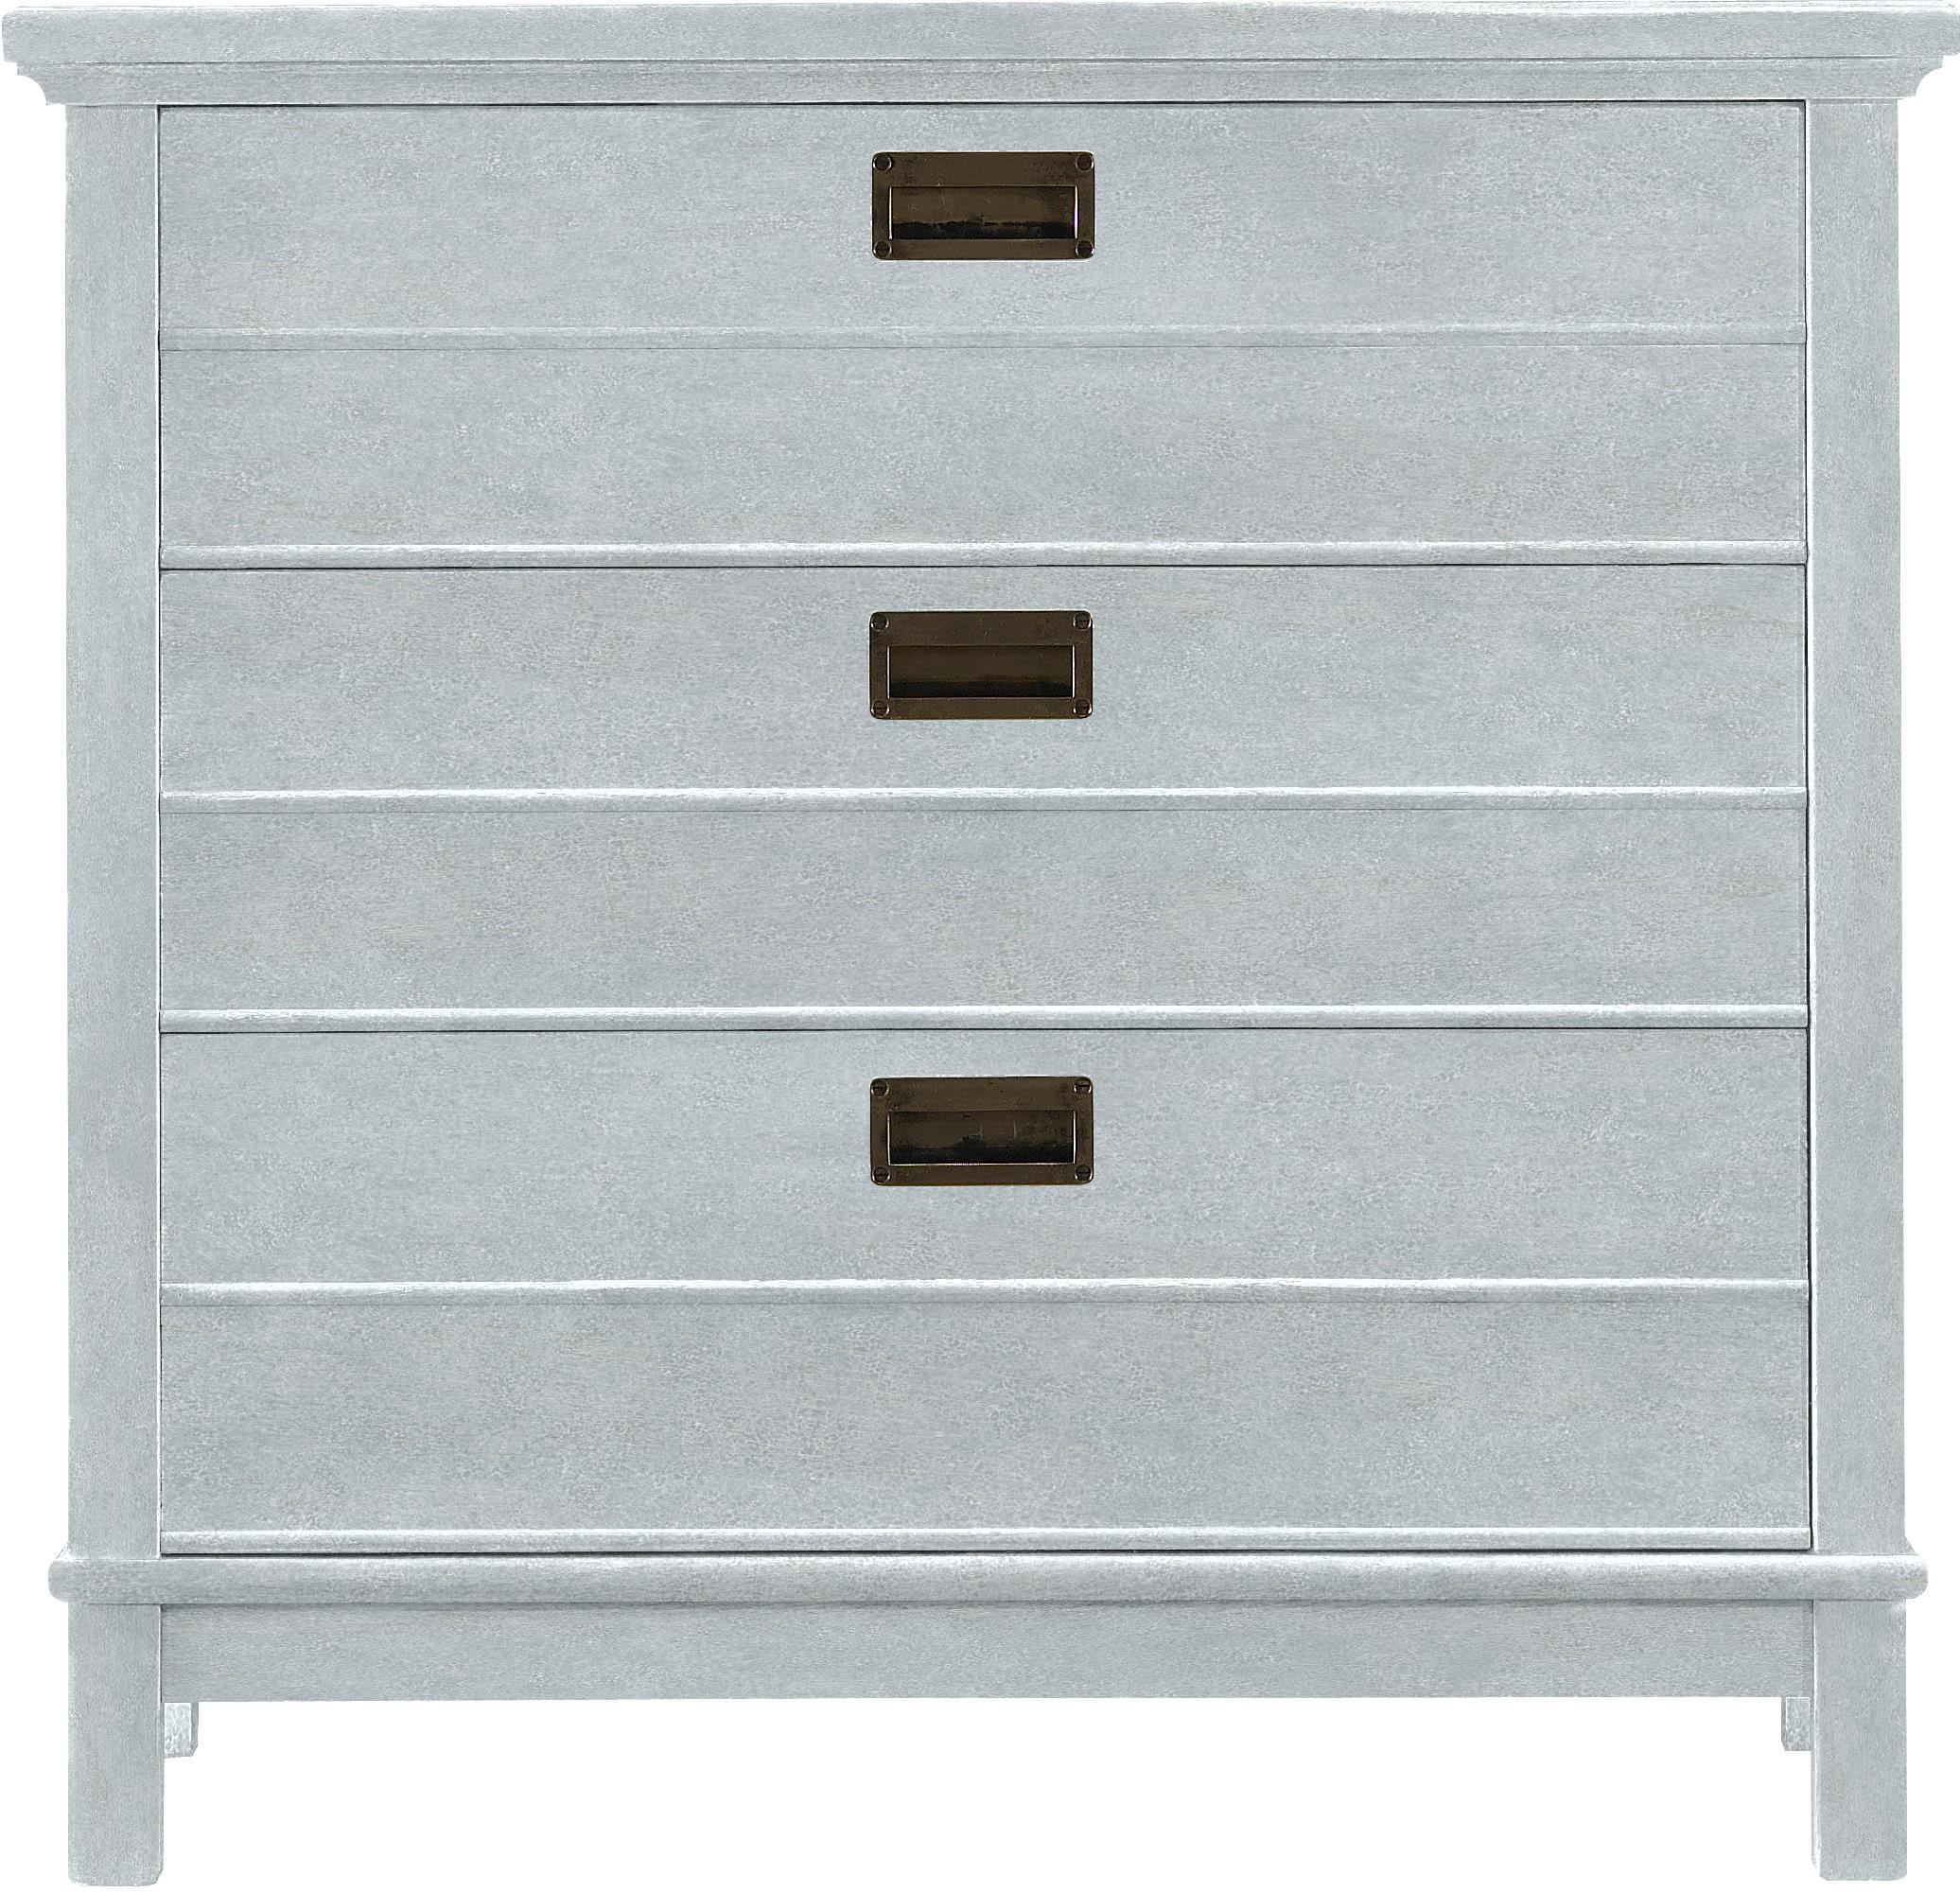 Stanley Furniture Coastal Living Resort Cape Comber Bachelor's Chest - Item Number: 062-H3-16